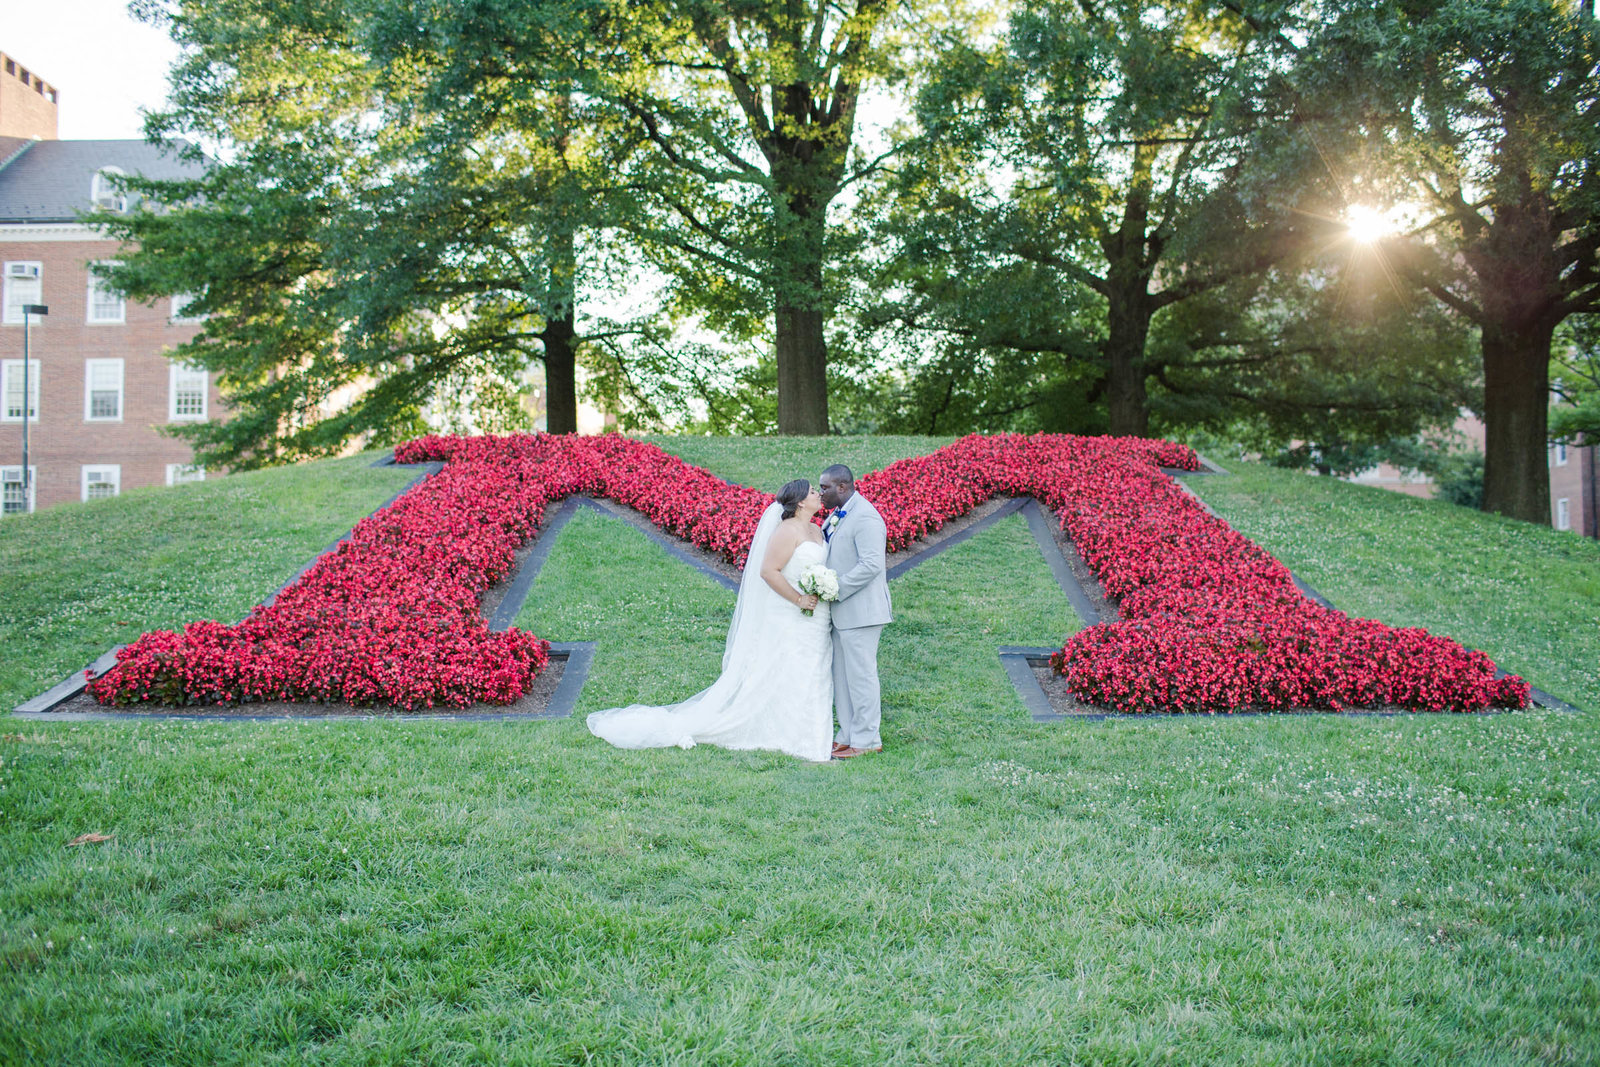 emily zacher university of maryland wedding memorial chapel maryland wedding photographer rachel word photography-3